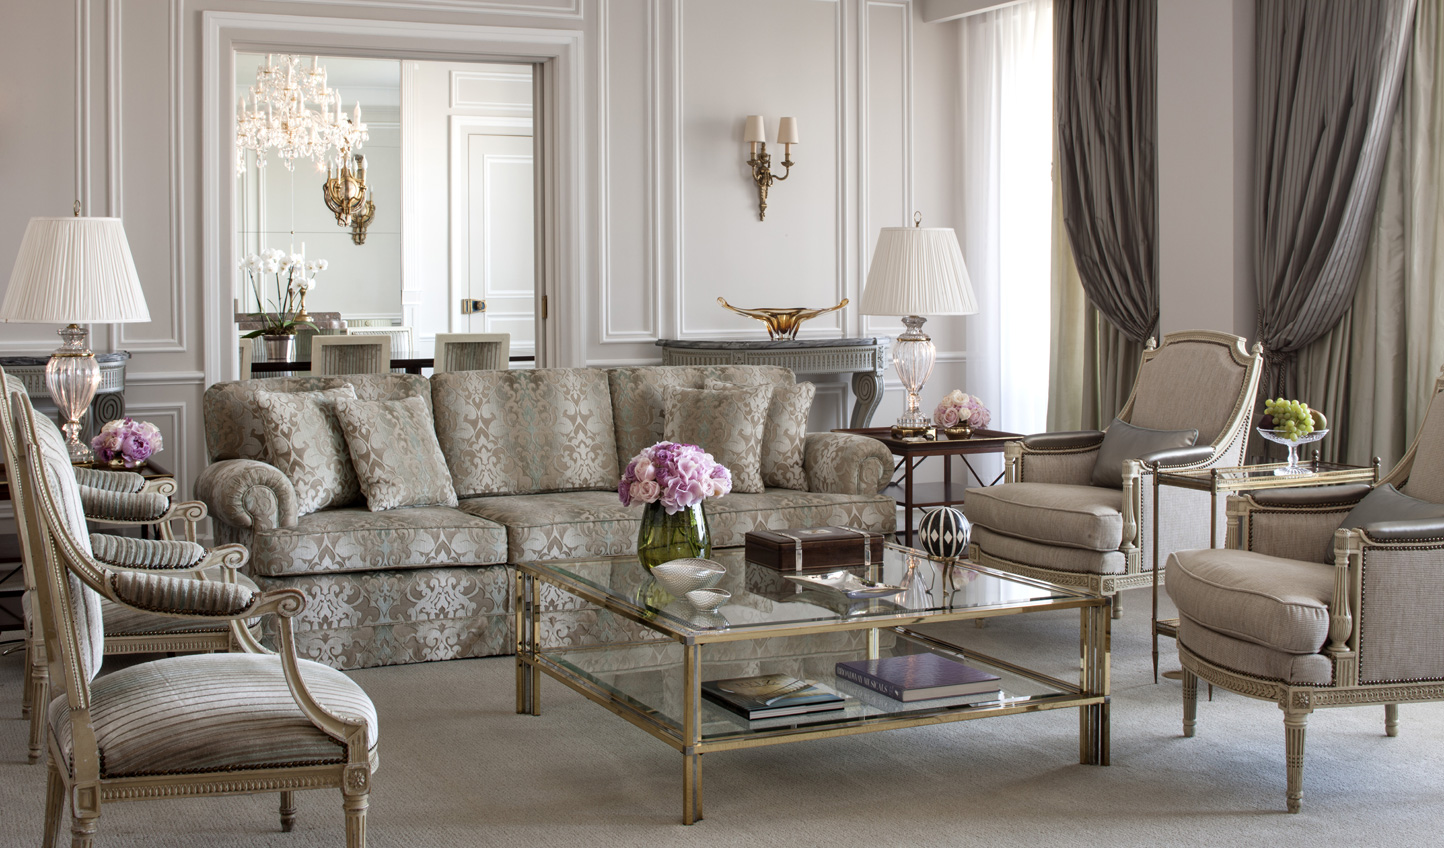 Make yourself at home in one of the opulent suites